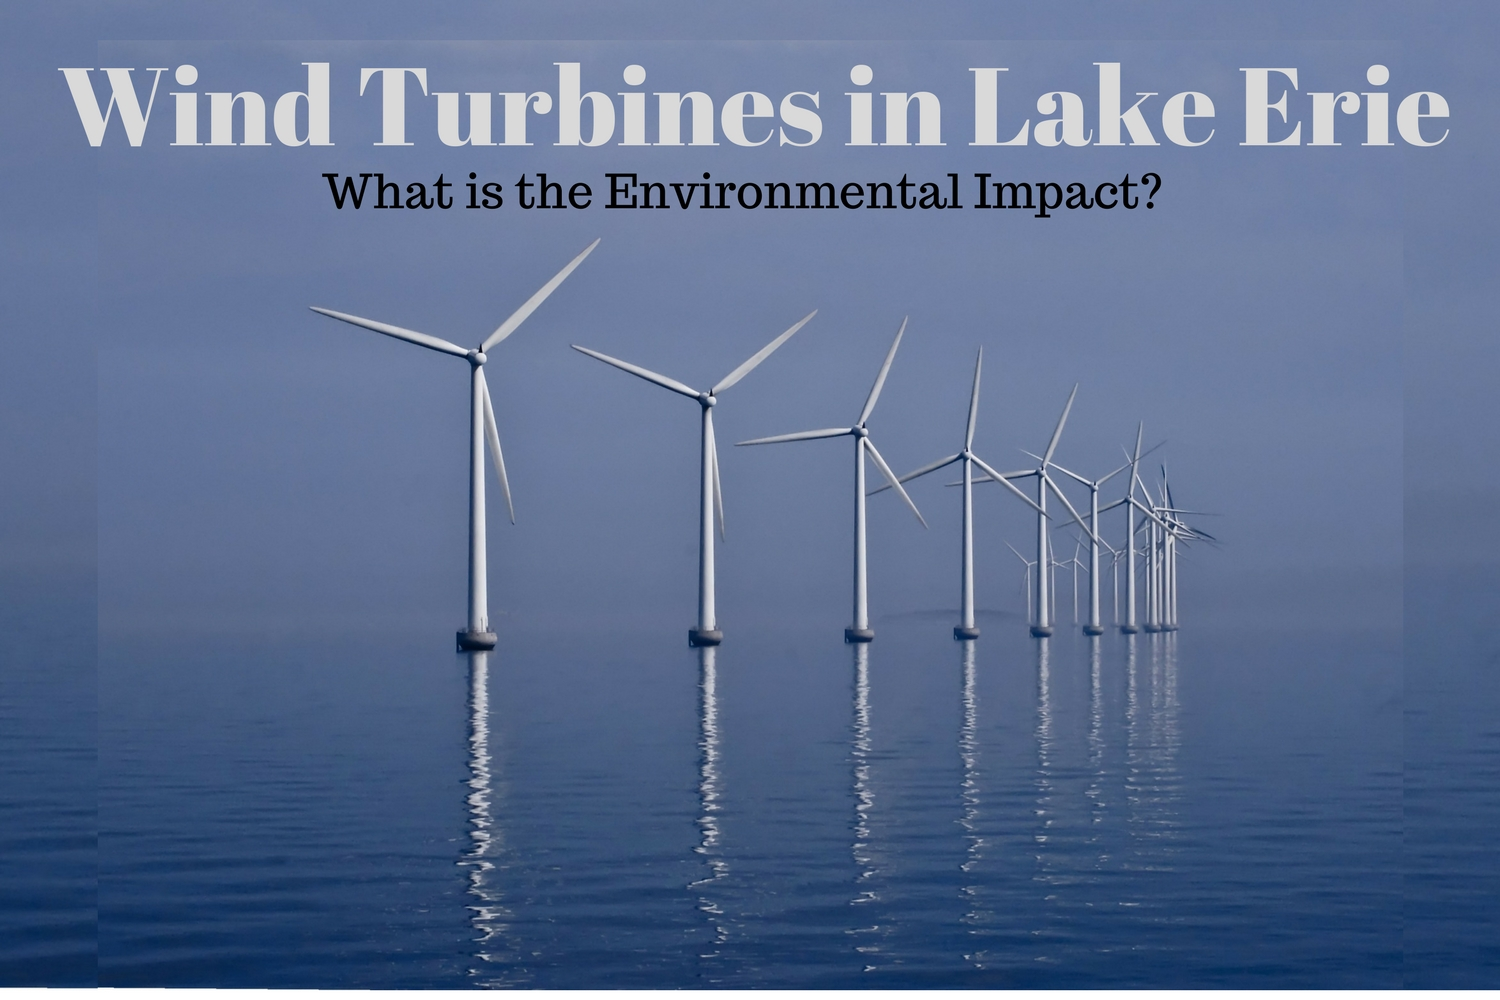 News: Lake Erie Wind Turbines